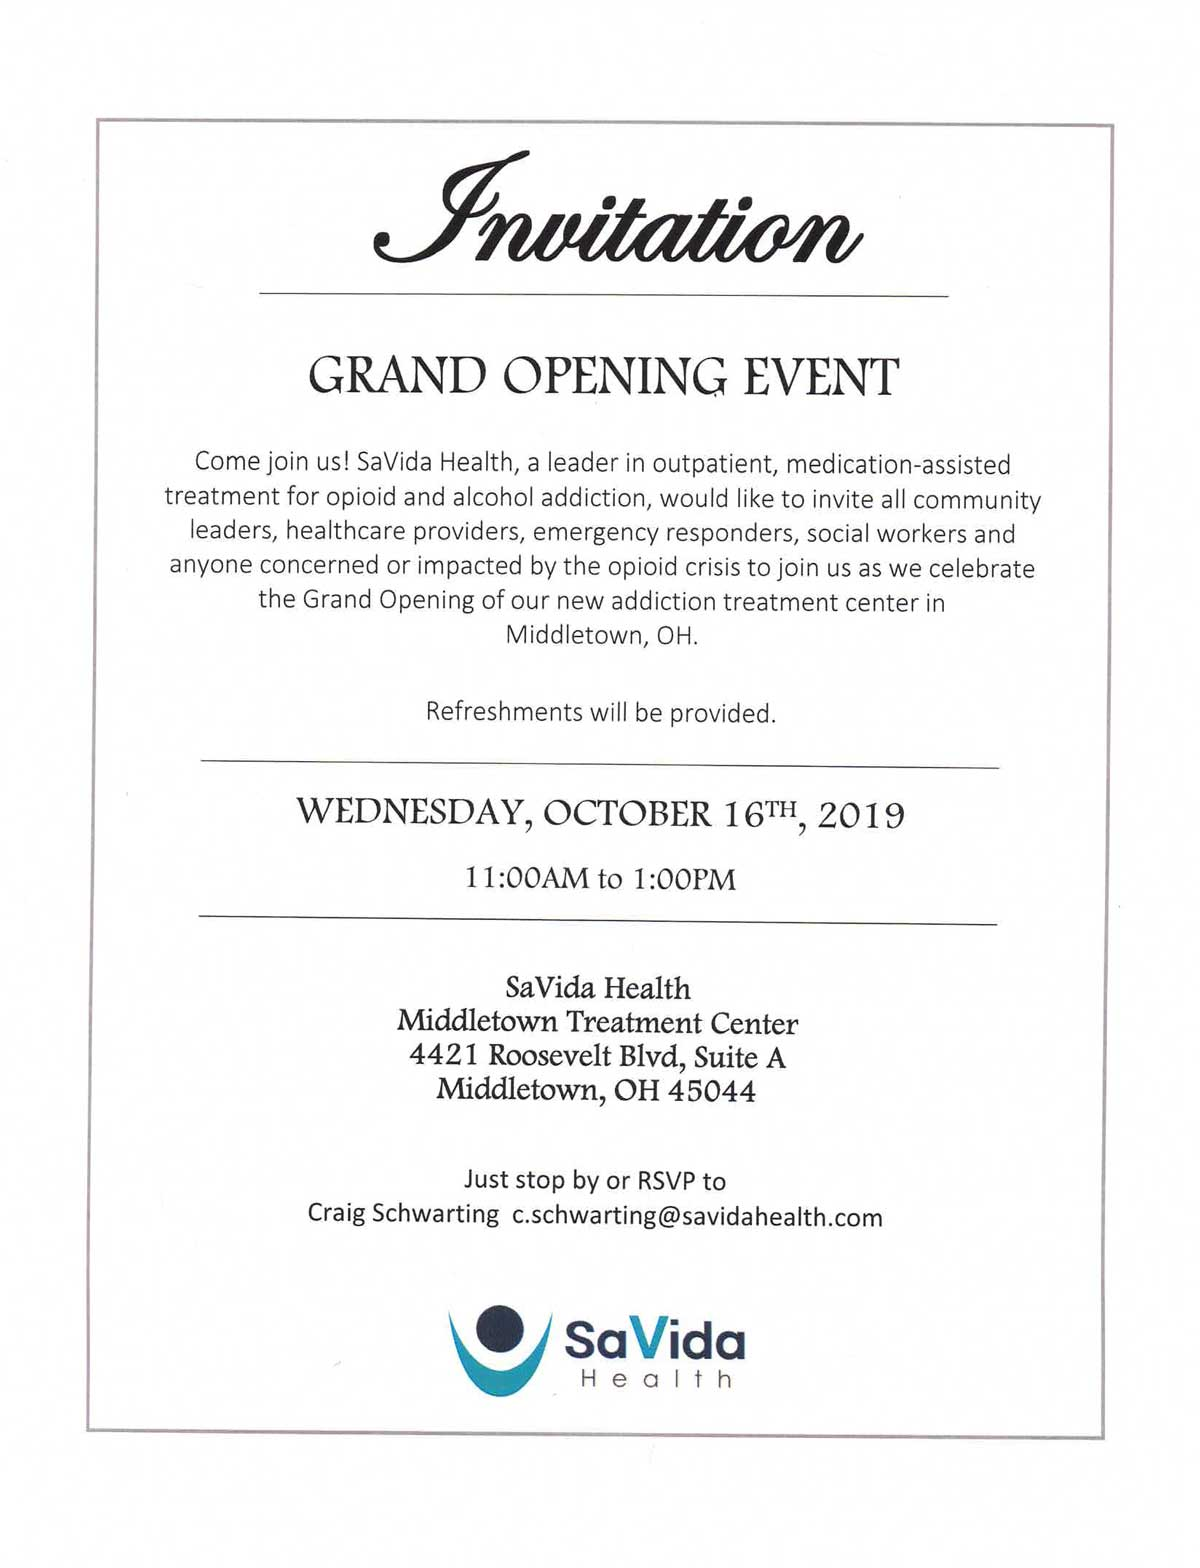 Middletown Grand Opening Invitation